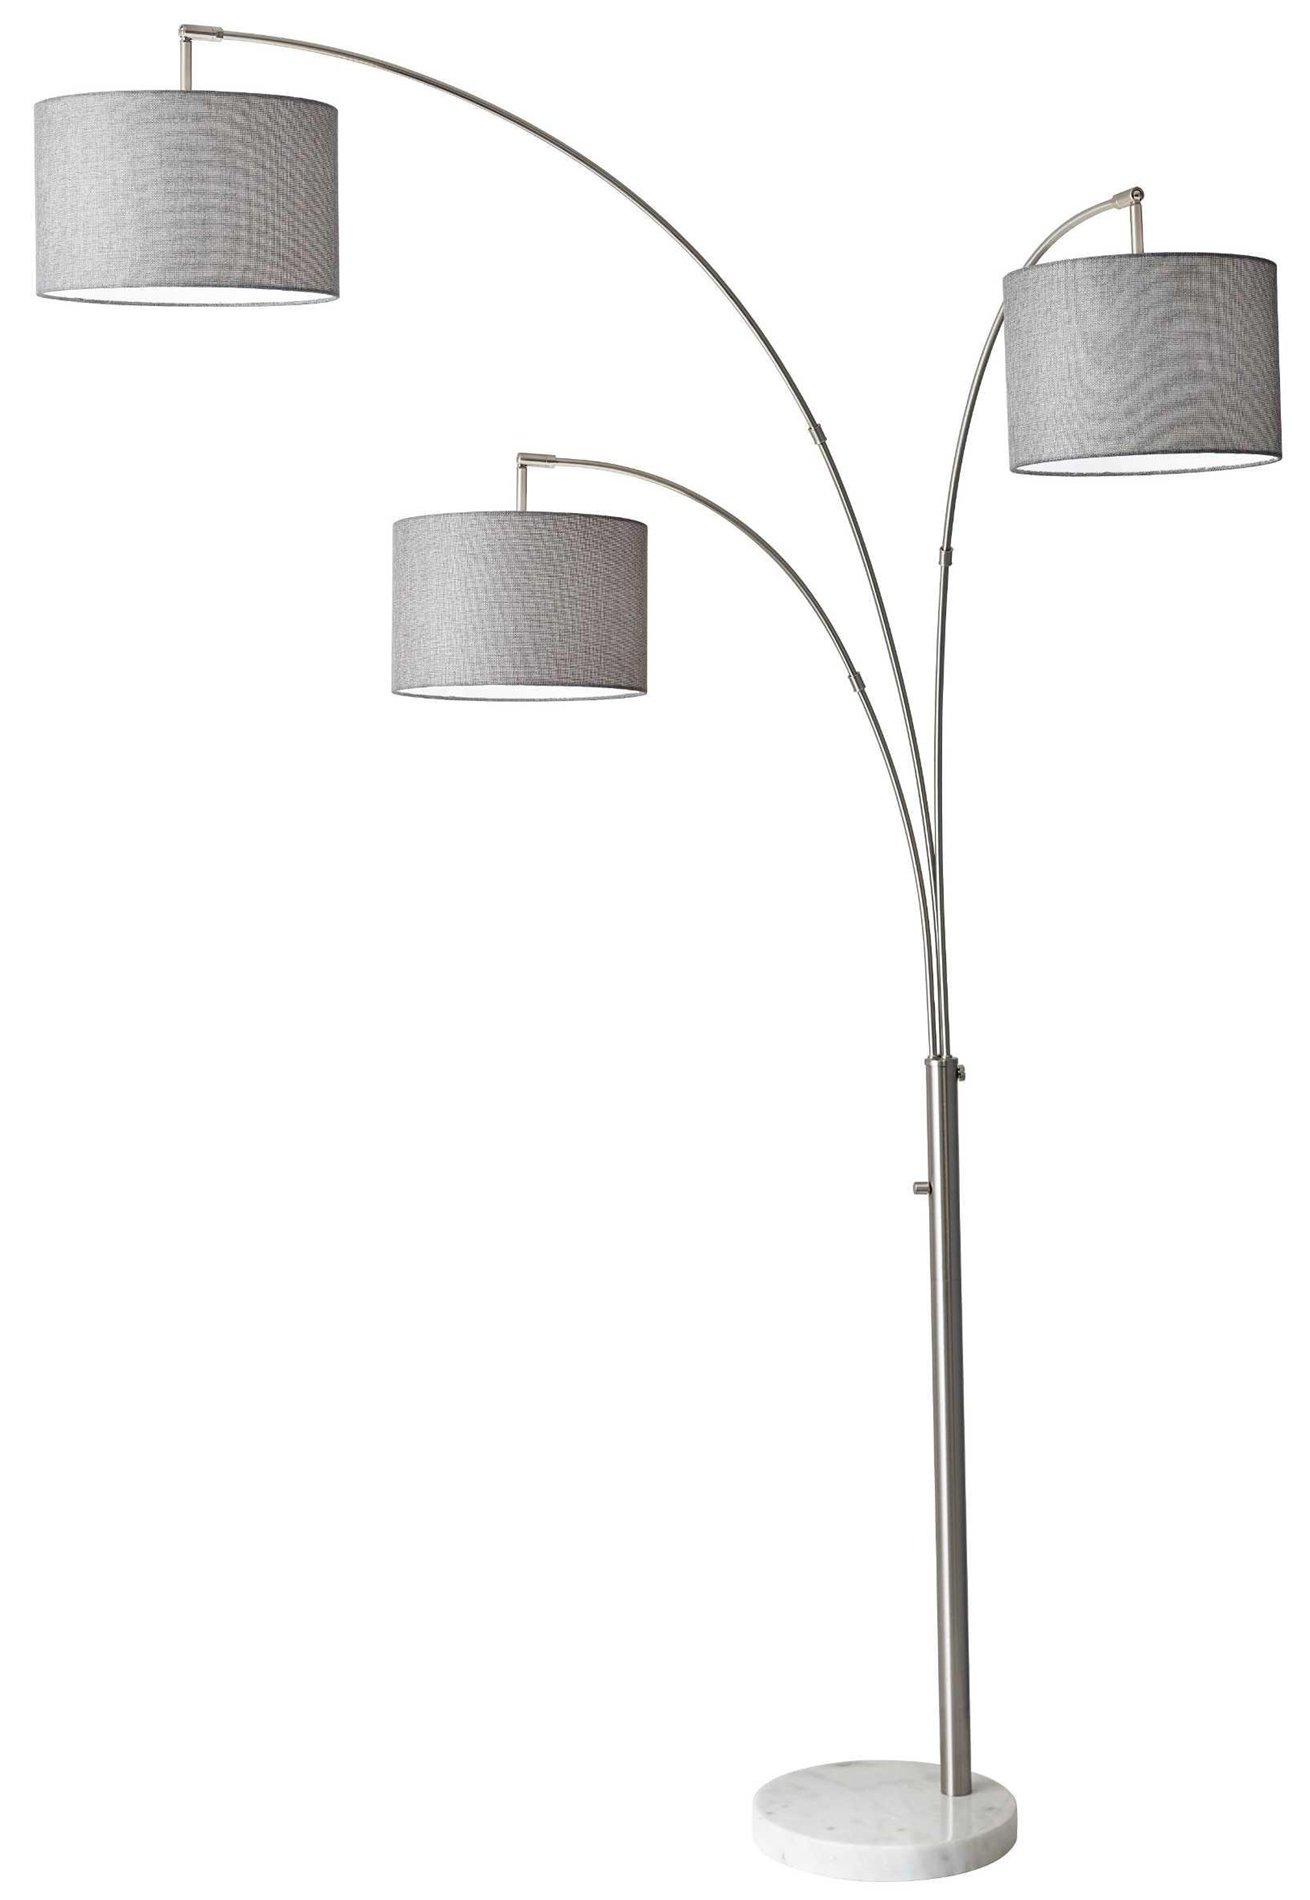 adesso bowery 3 arm modern contemporary arc floor lamp ad 4250 22. Black Bedroom Furniture Sets. Home Design Ideas